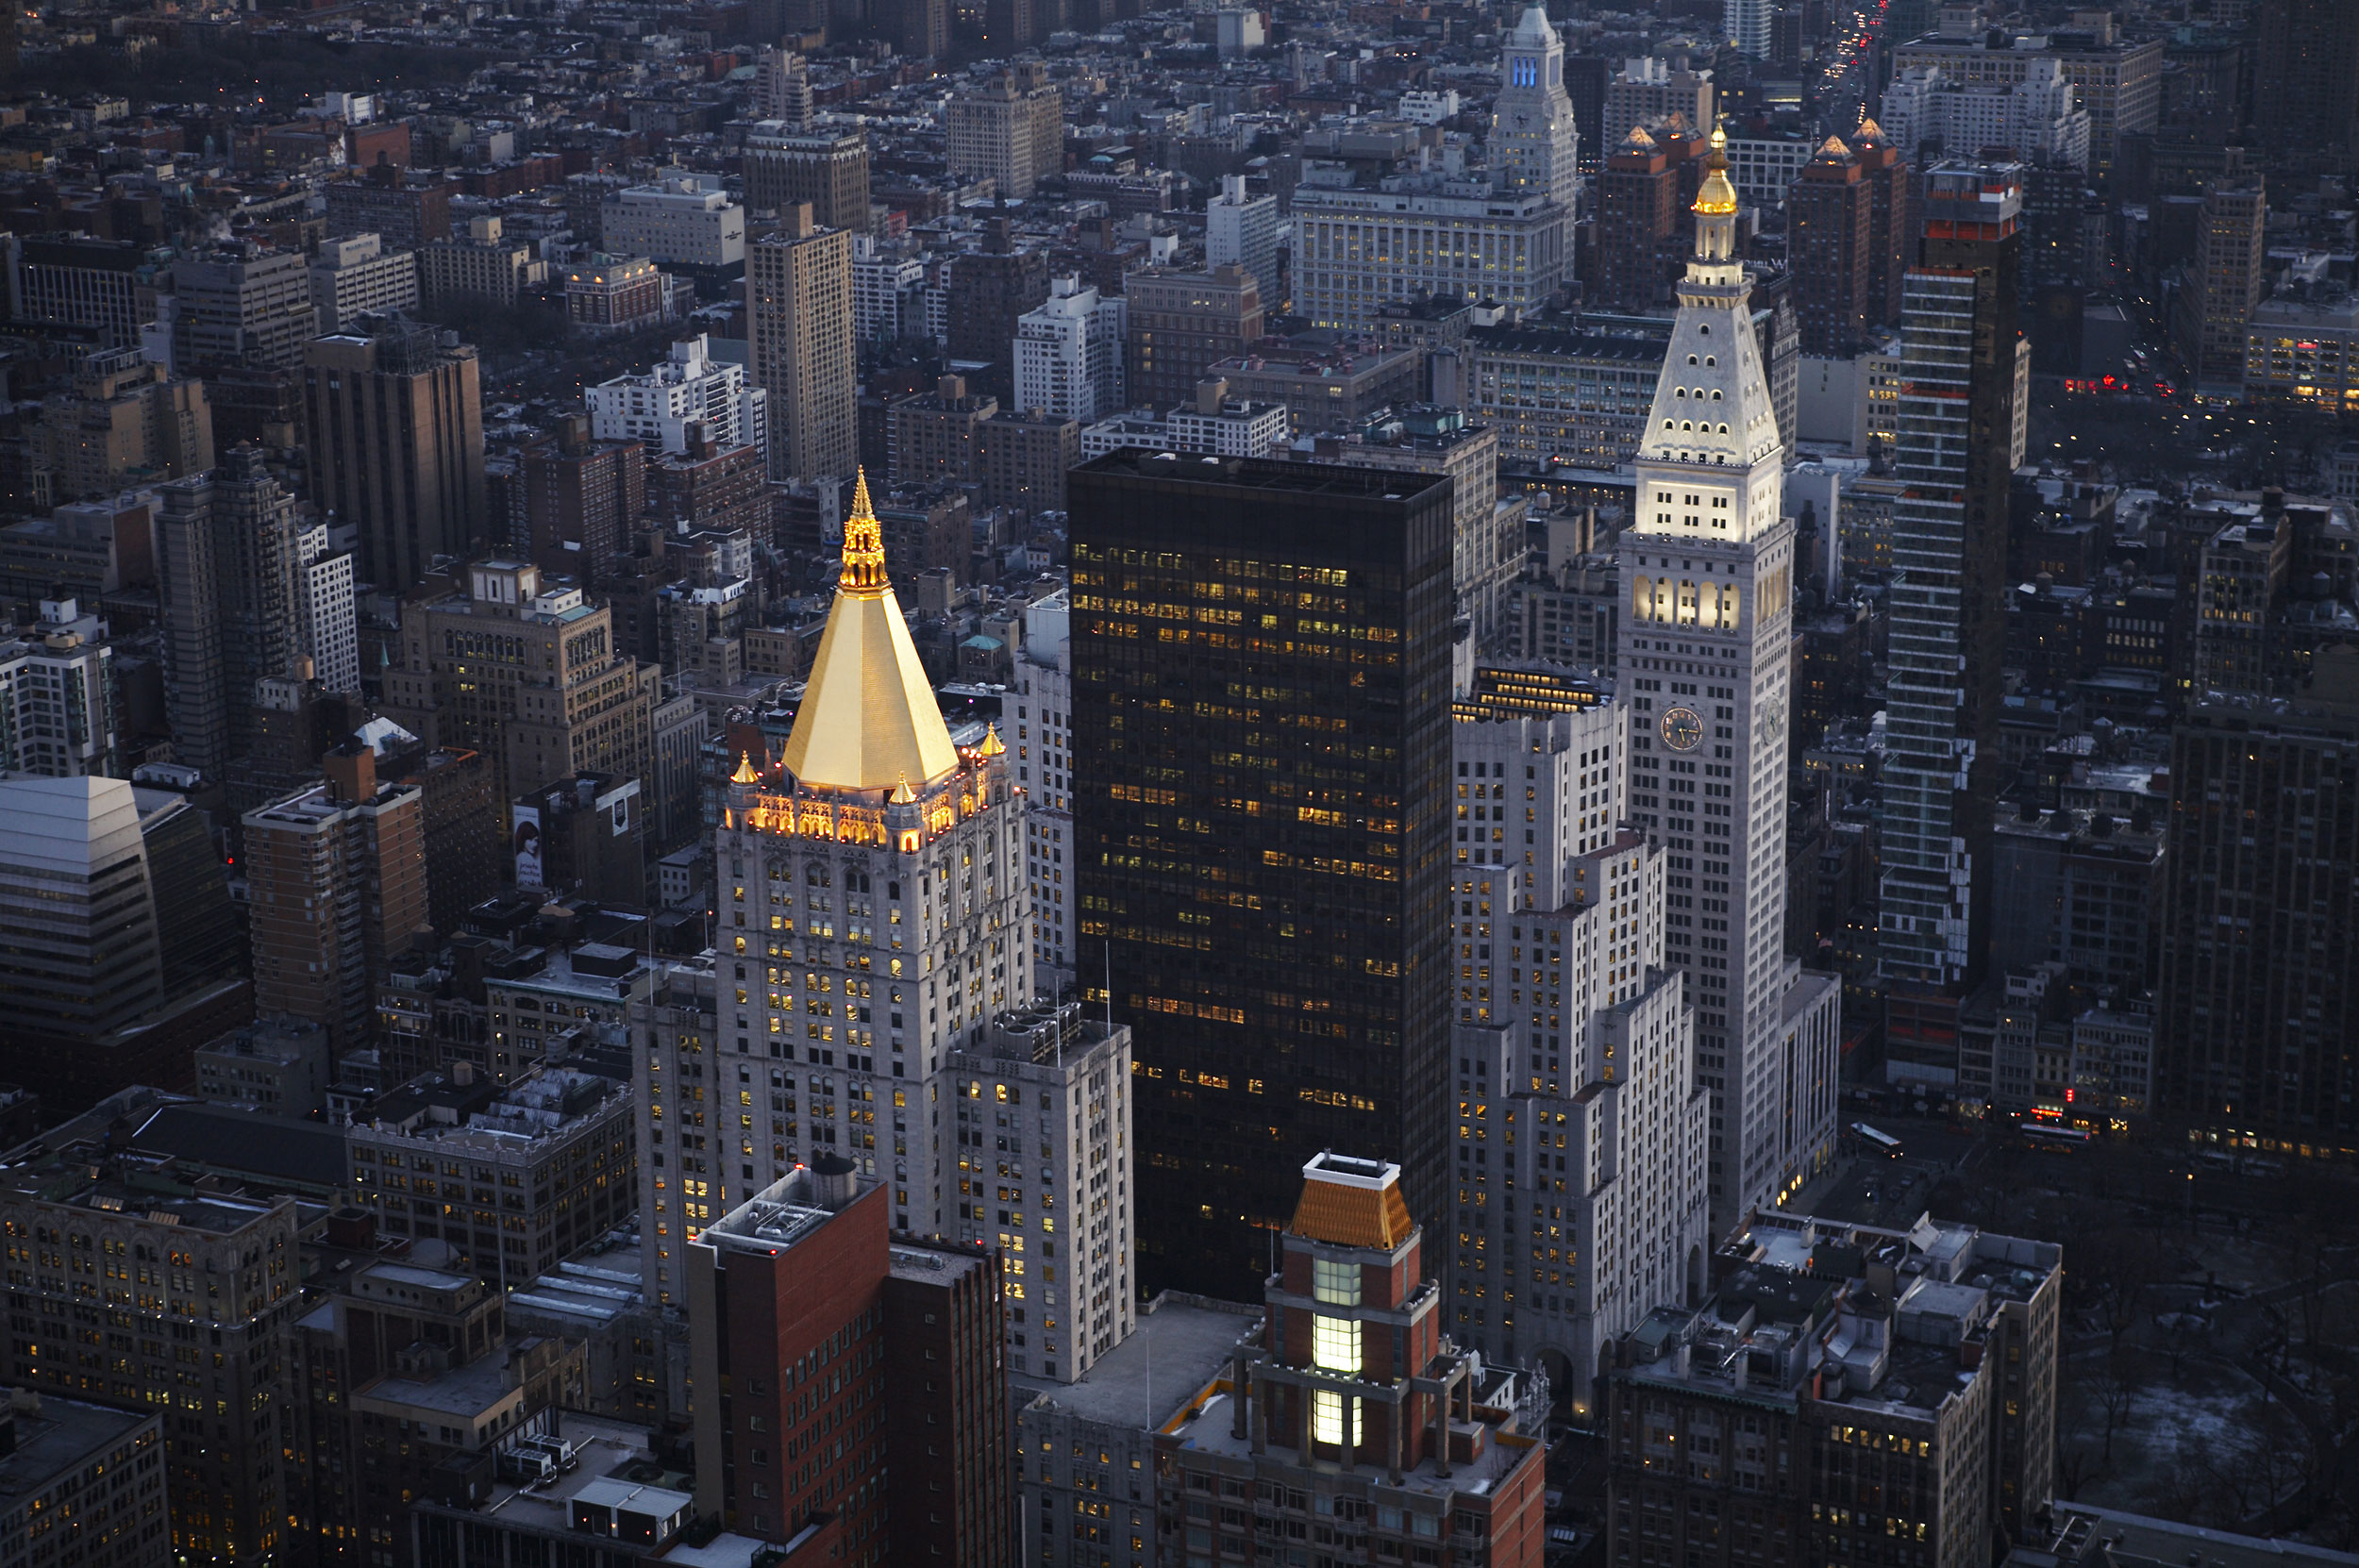 Majestic Open House New York Is A Nonprofit Civicorganization Dedicated To Connecting Public New York Richarchitectural Open House New An Interview Gregory Wessner Founded curbed Open House New York